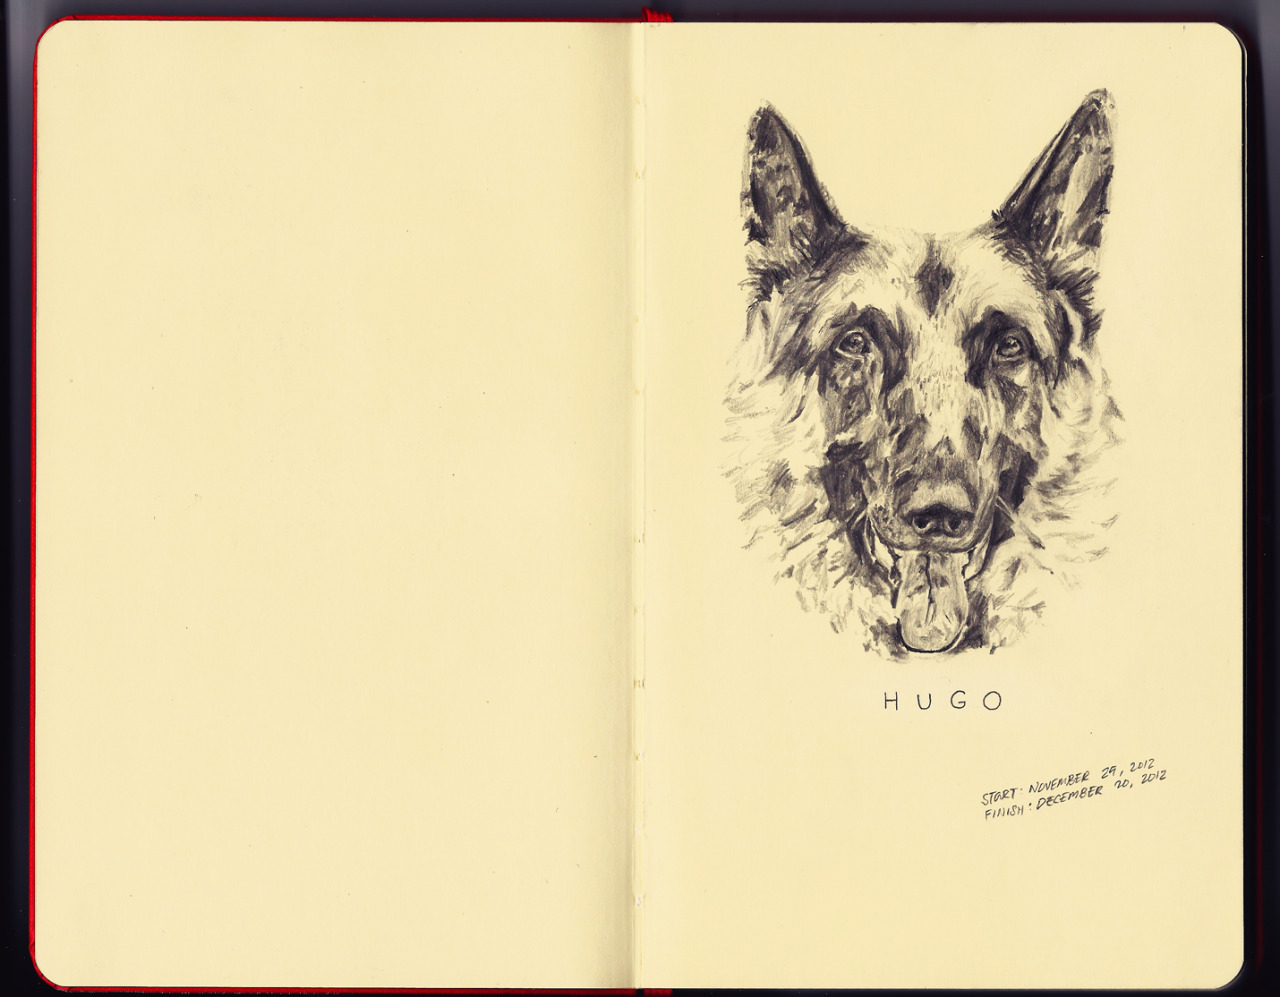 The first page on my moleskine.It was my German Shepherd's birthday yesterday. Happy 3rd Birthday Hugo!